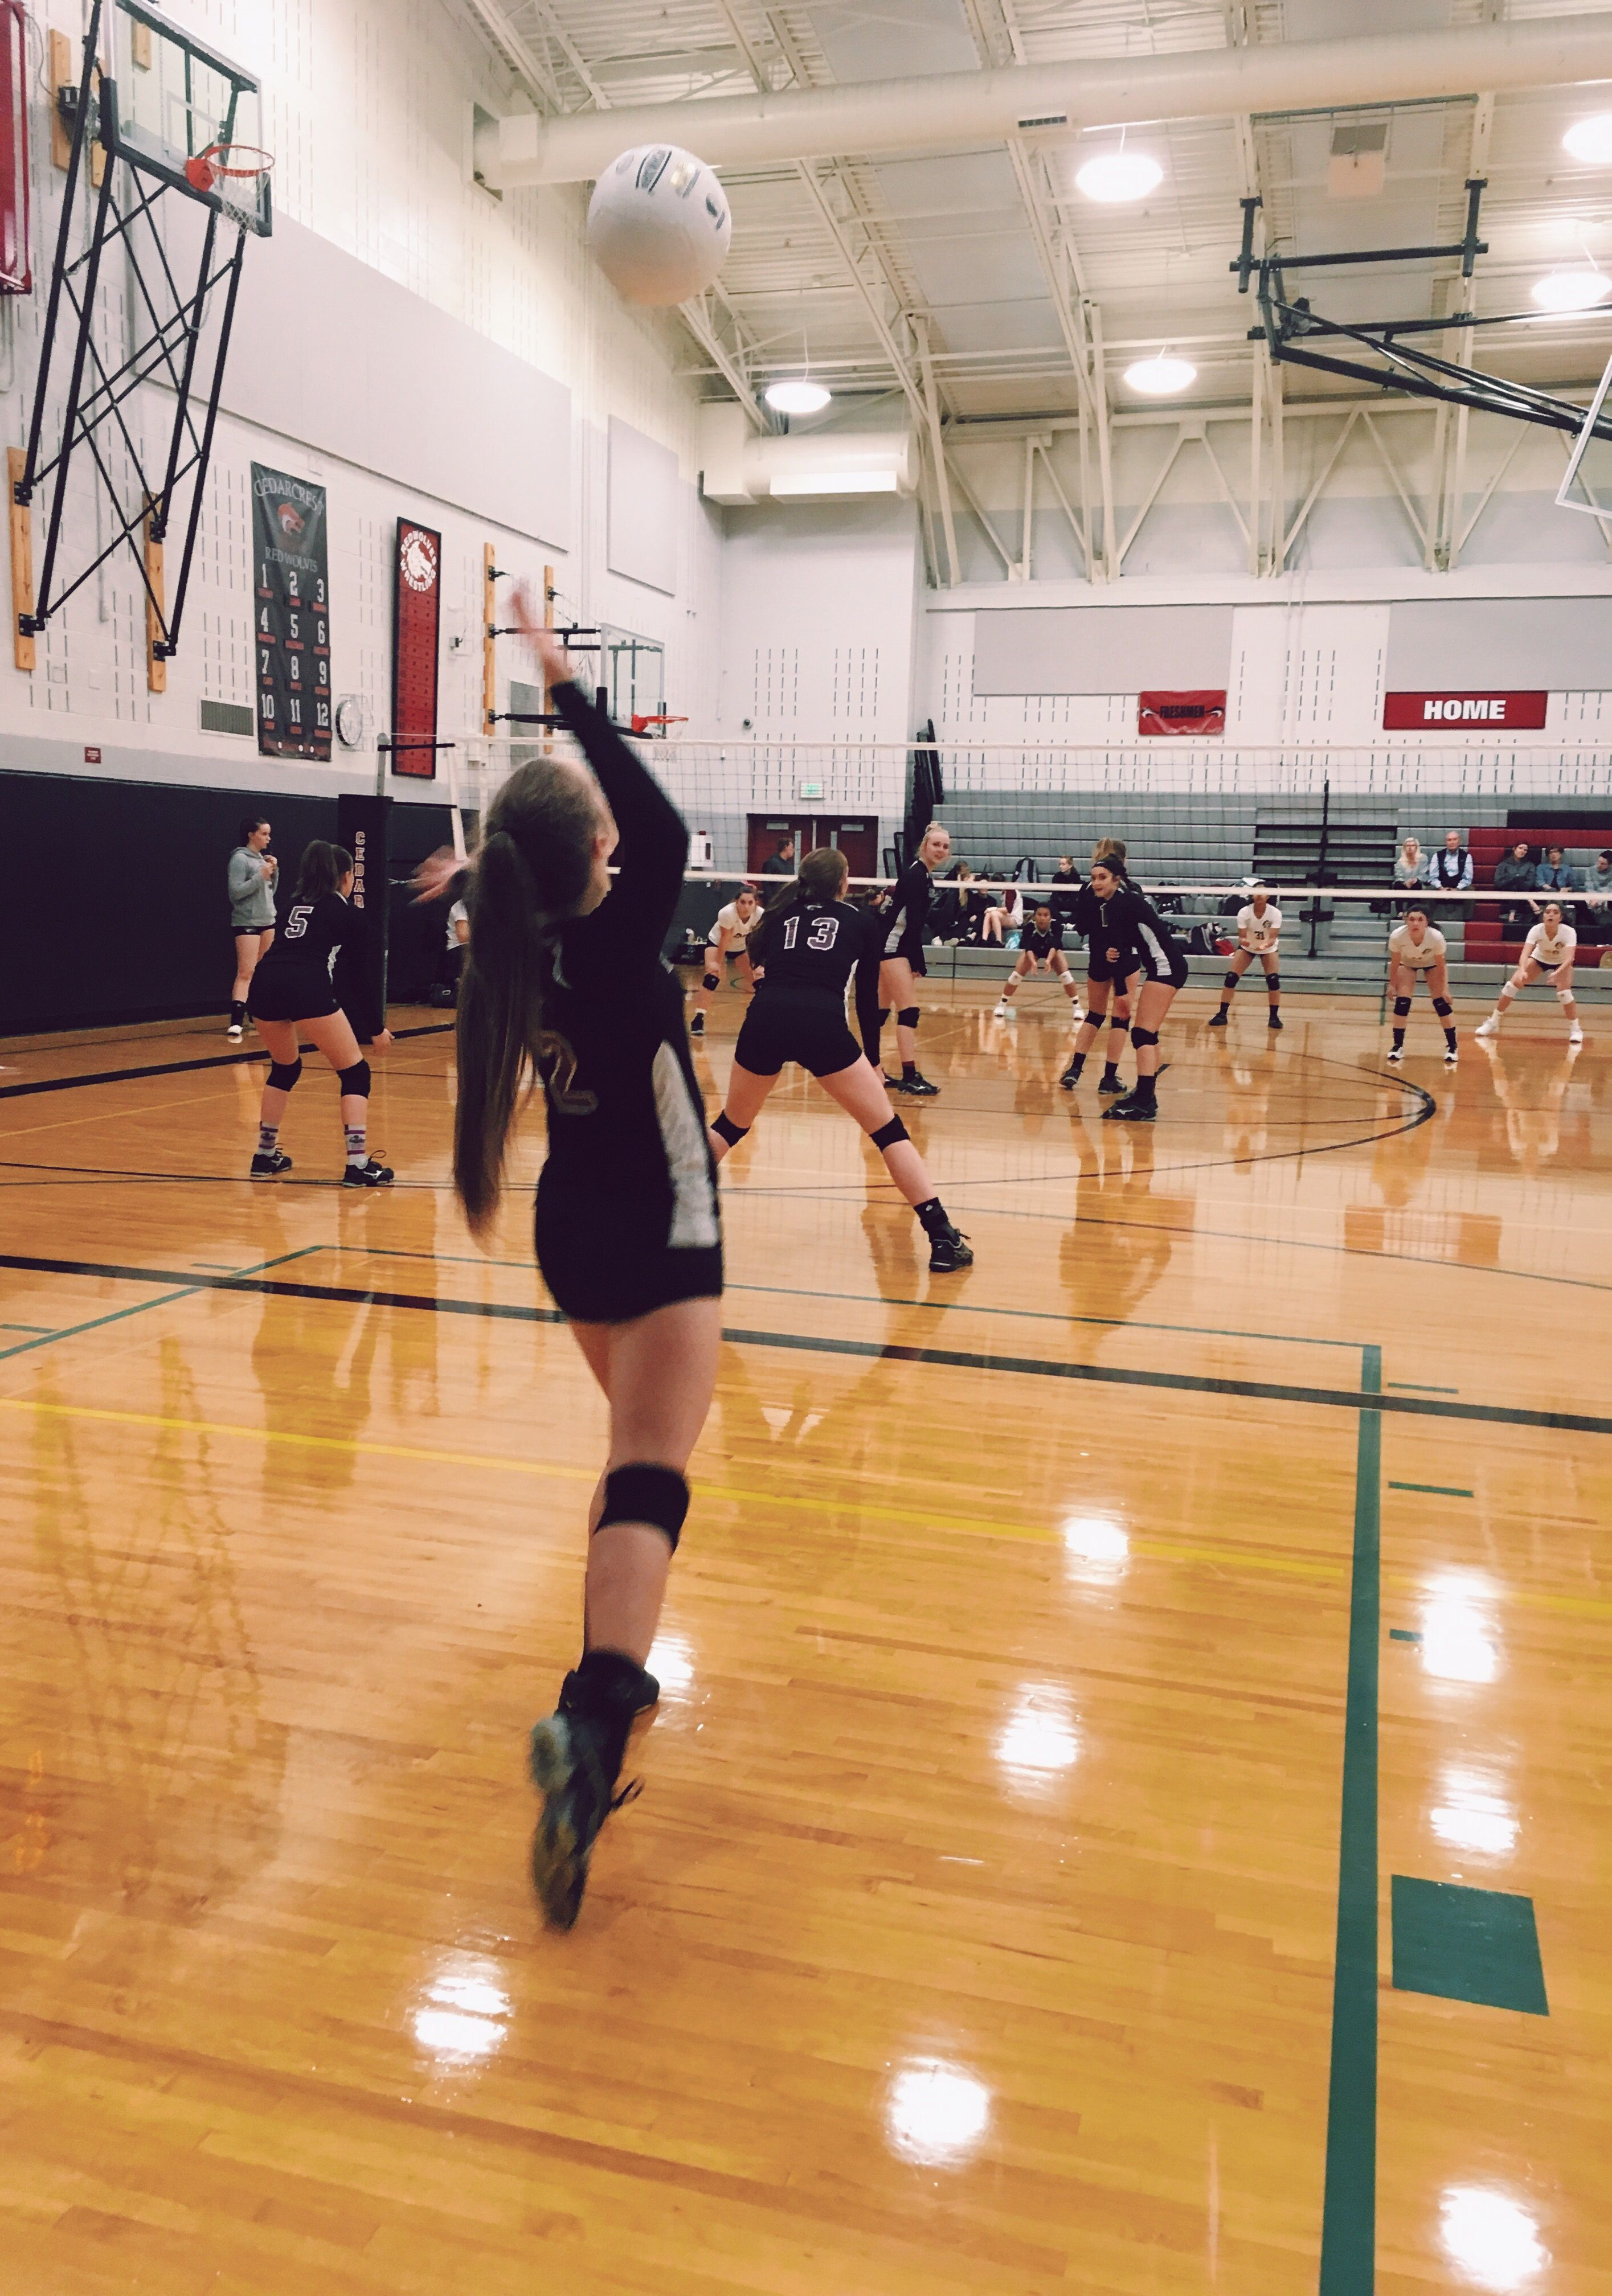 Pinterest Jacquelinestaylor Volleyball Workouts Volleyball Training Volleyball Tumblr